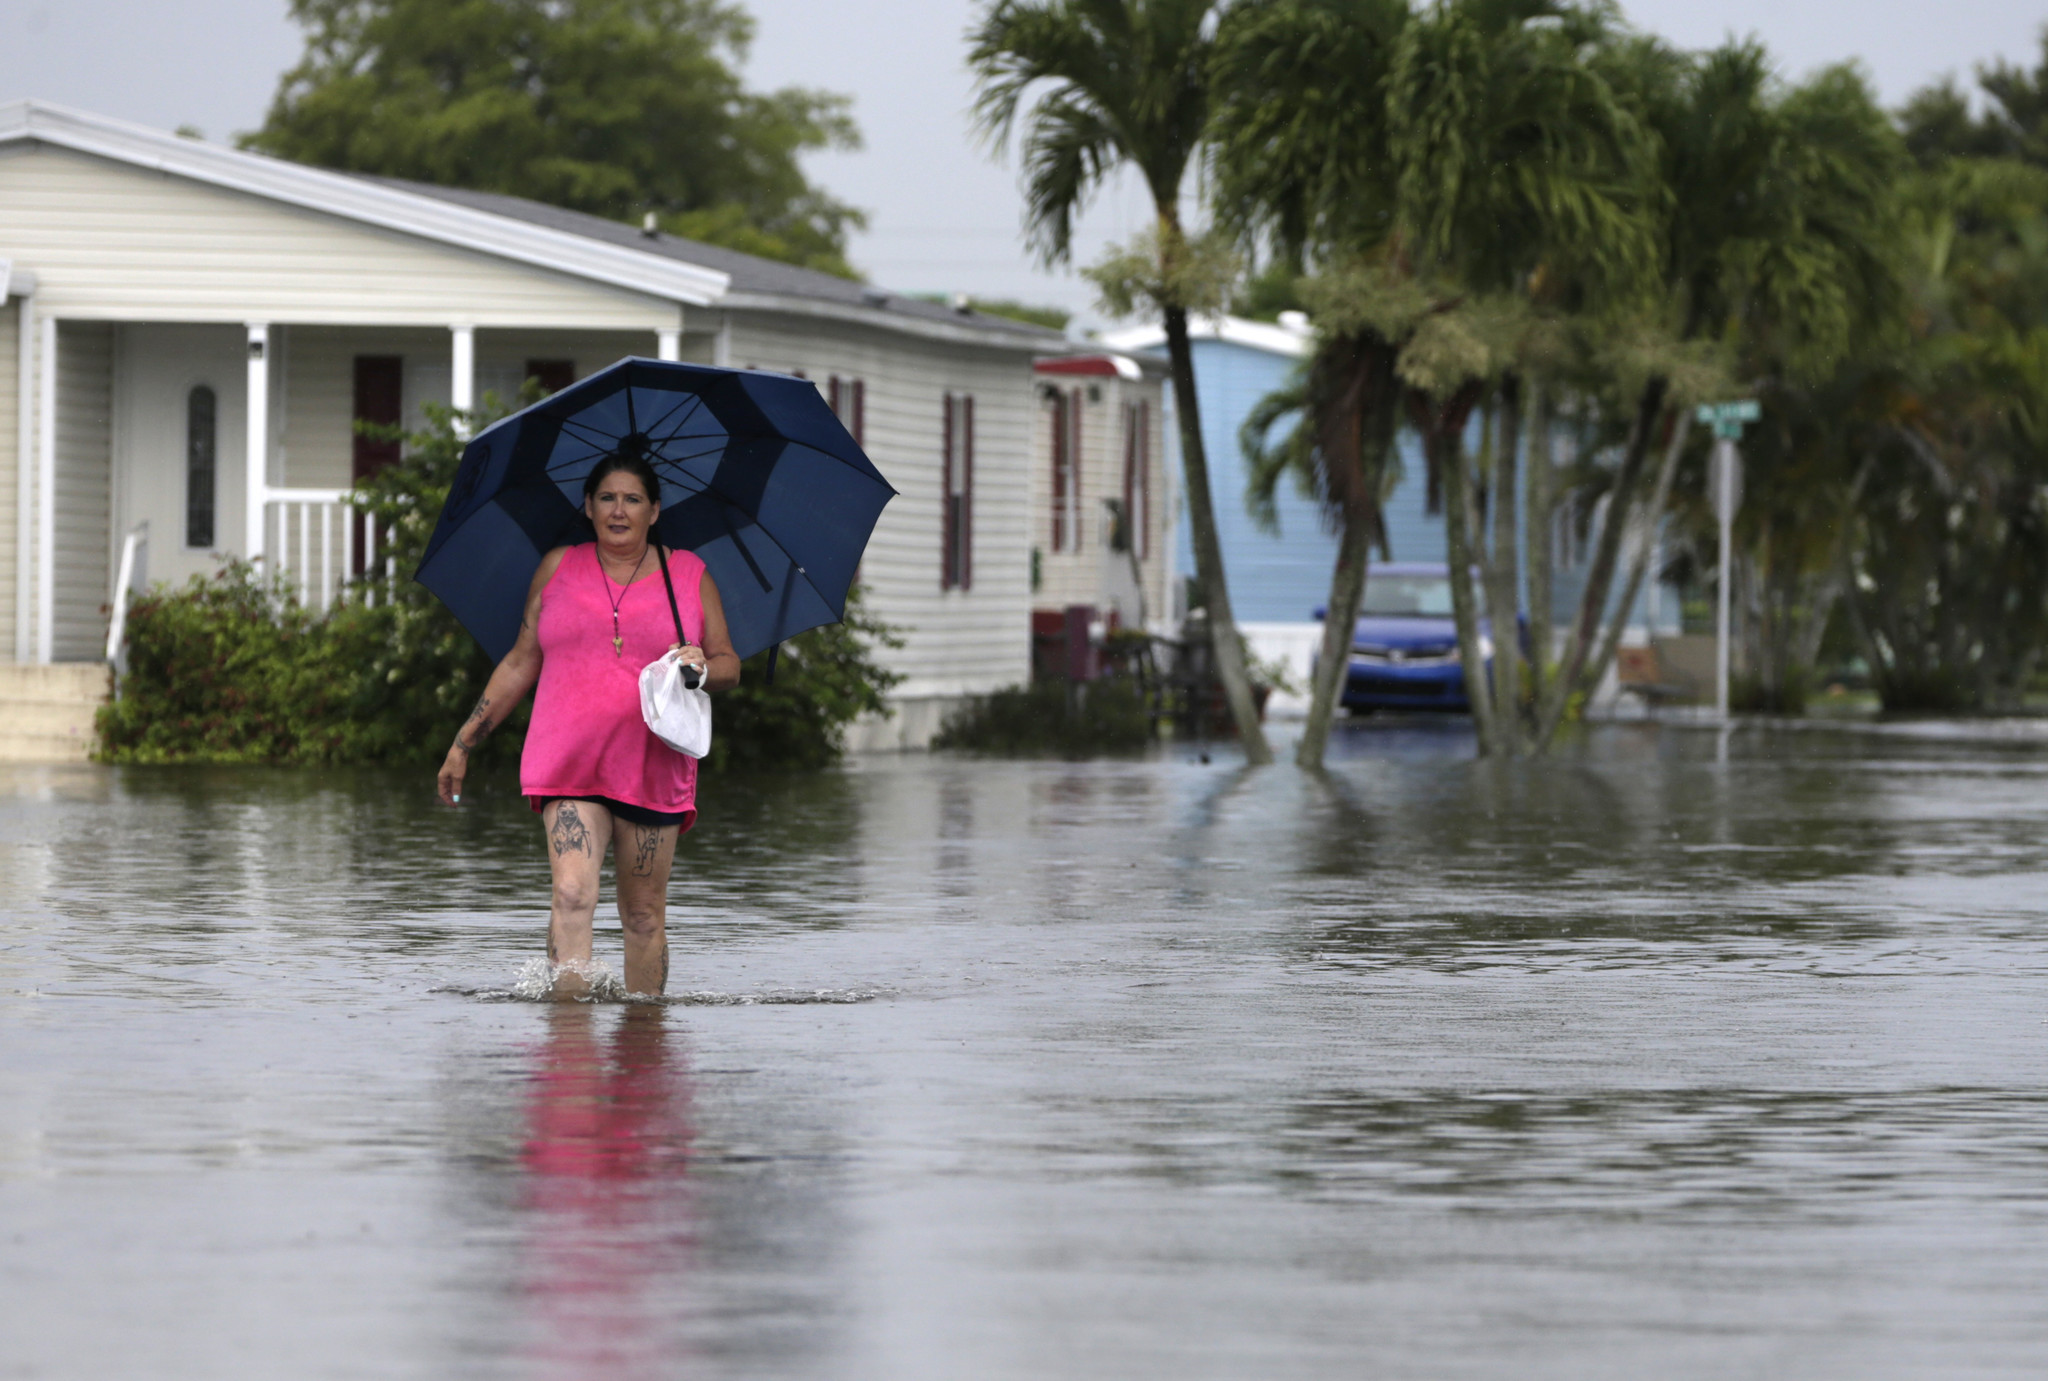 'Water is what's killing people:' Hurricanes could drench Florida in catastrophic flooding